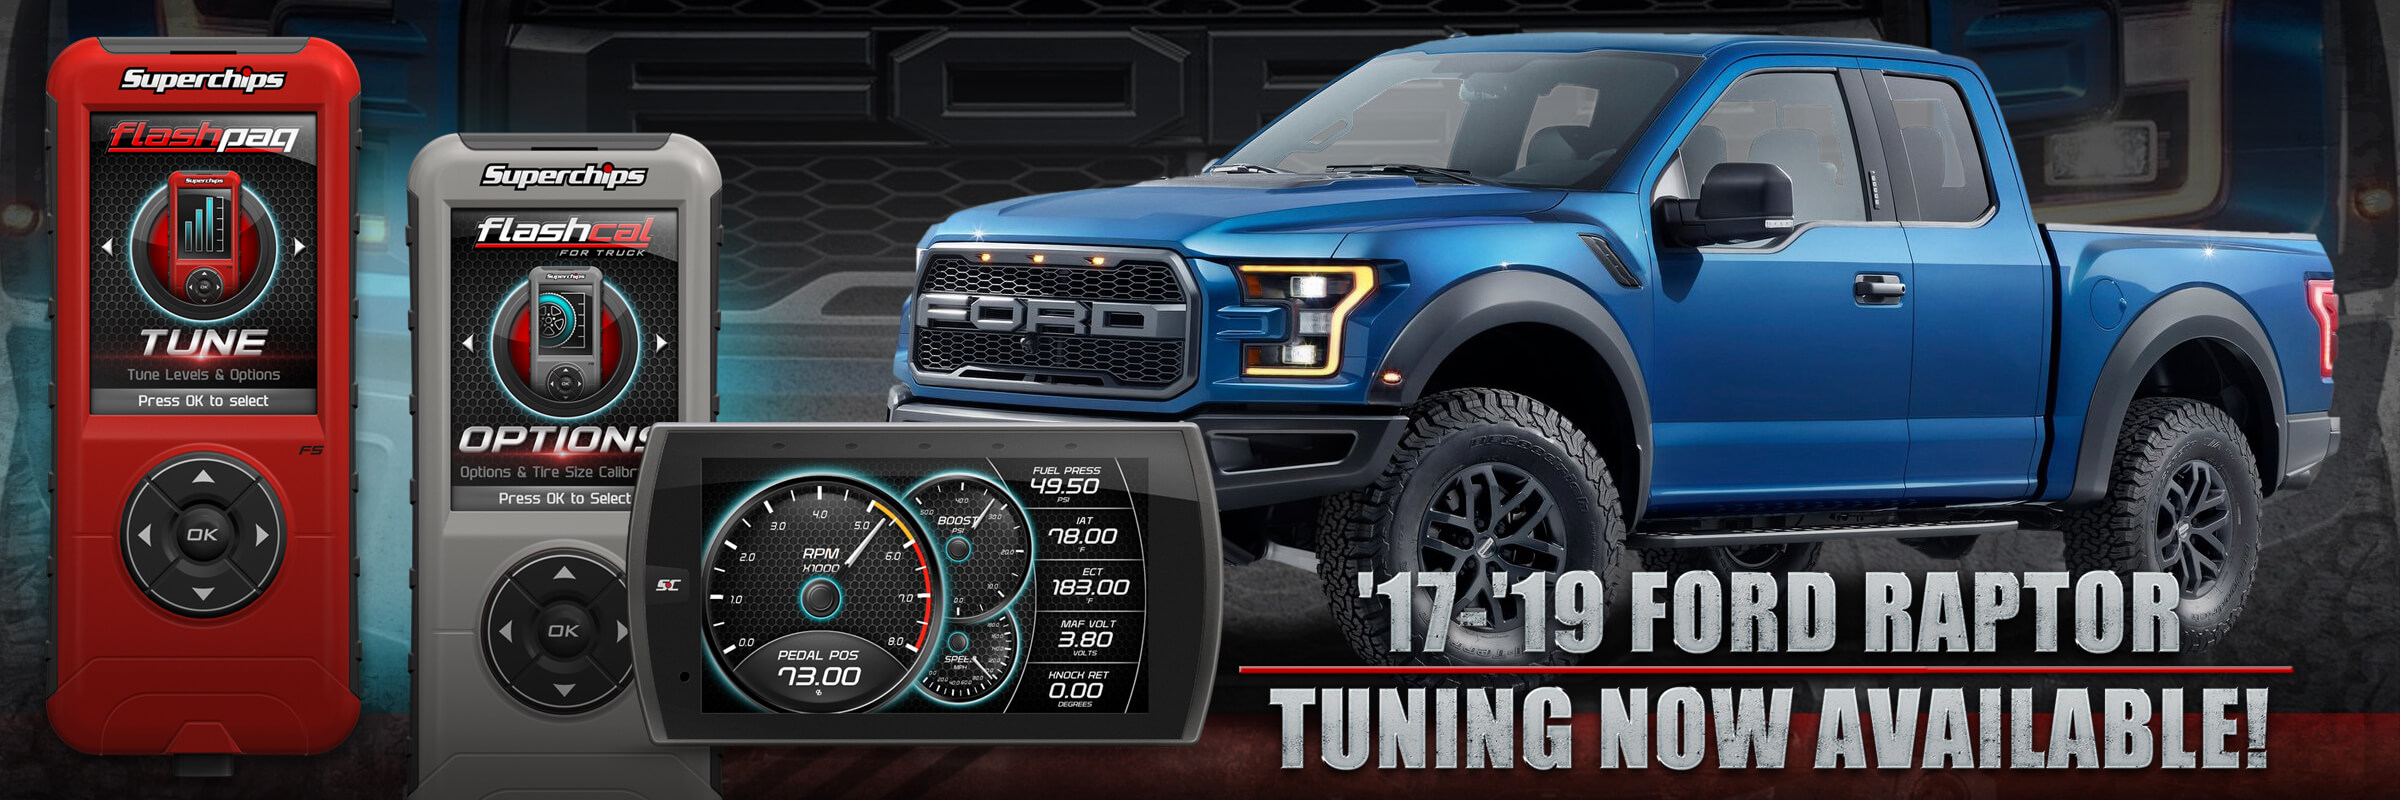 2017 2019 Ford Raptor F 150 3 5l Support Now Available Superchips